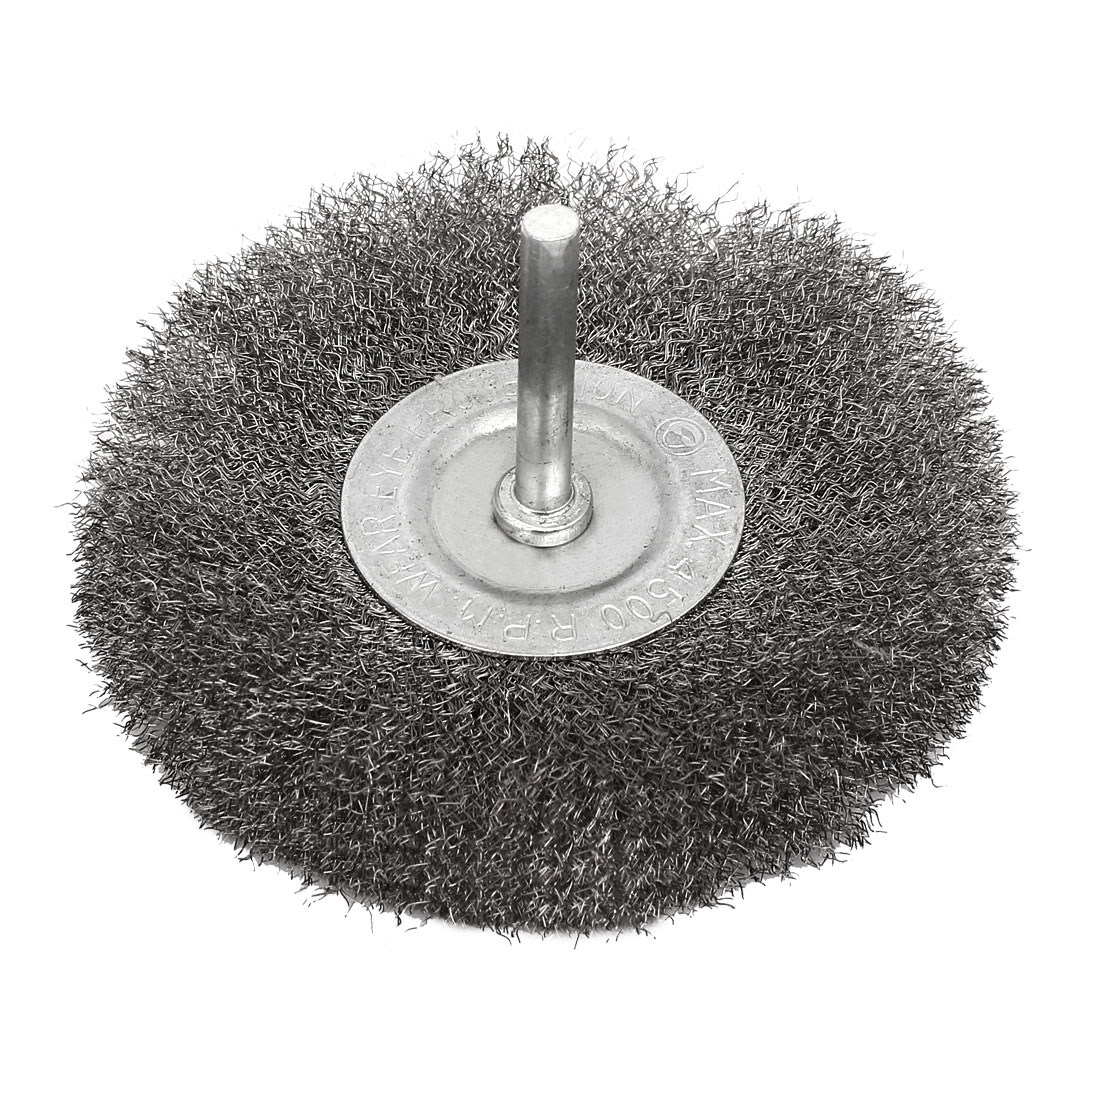 6mmx100mm T Shaped Crimped Wire Wheel Brush Buffing Polishing Tool Silver Tone